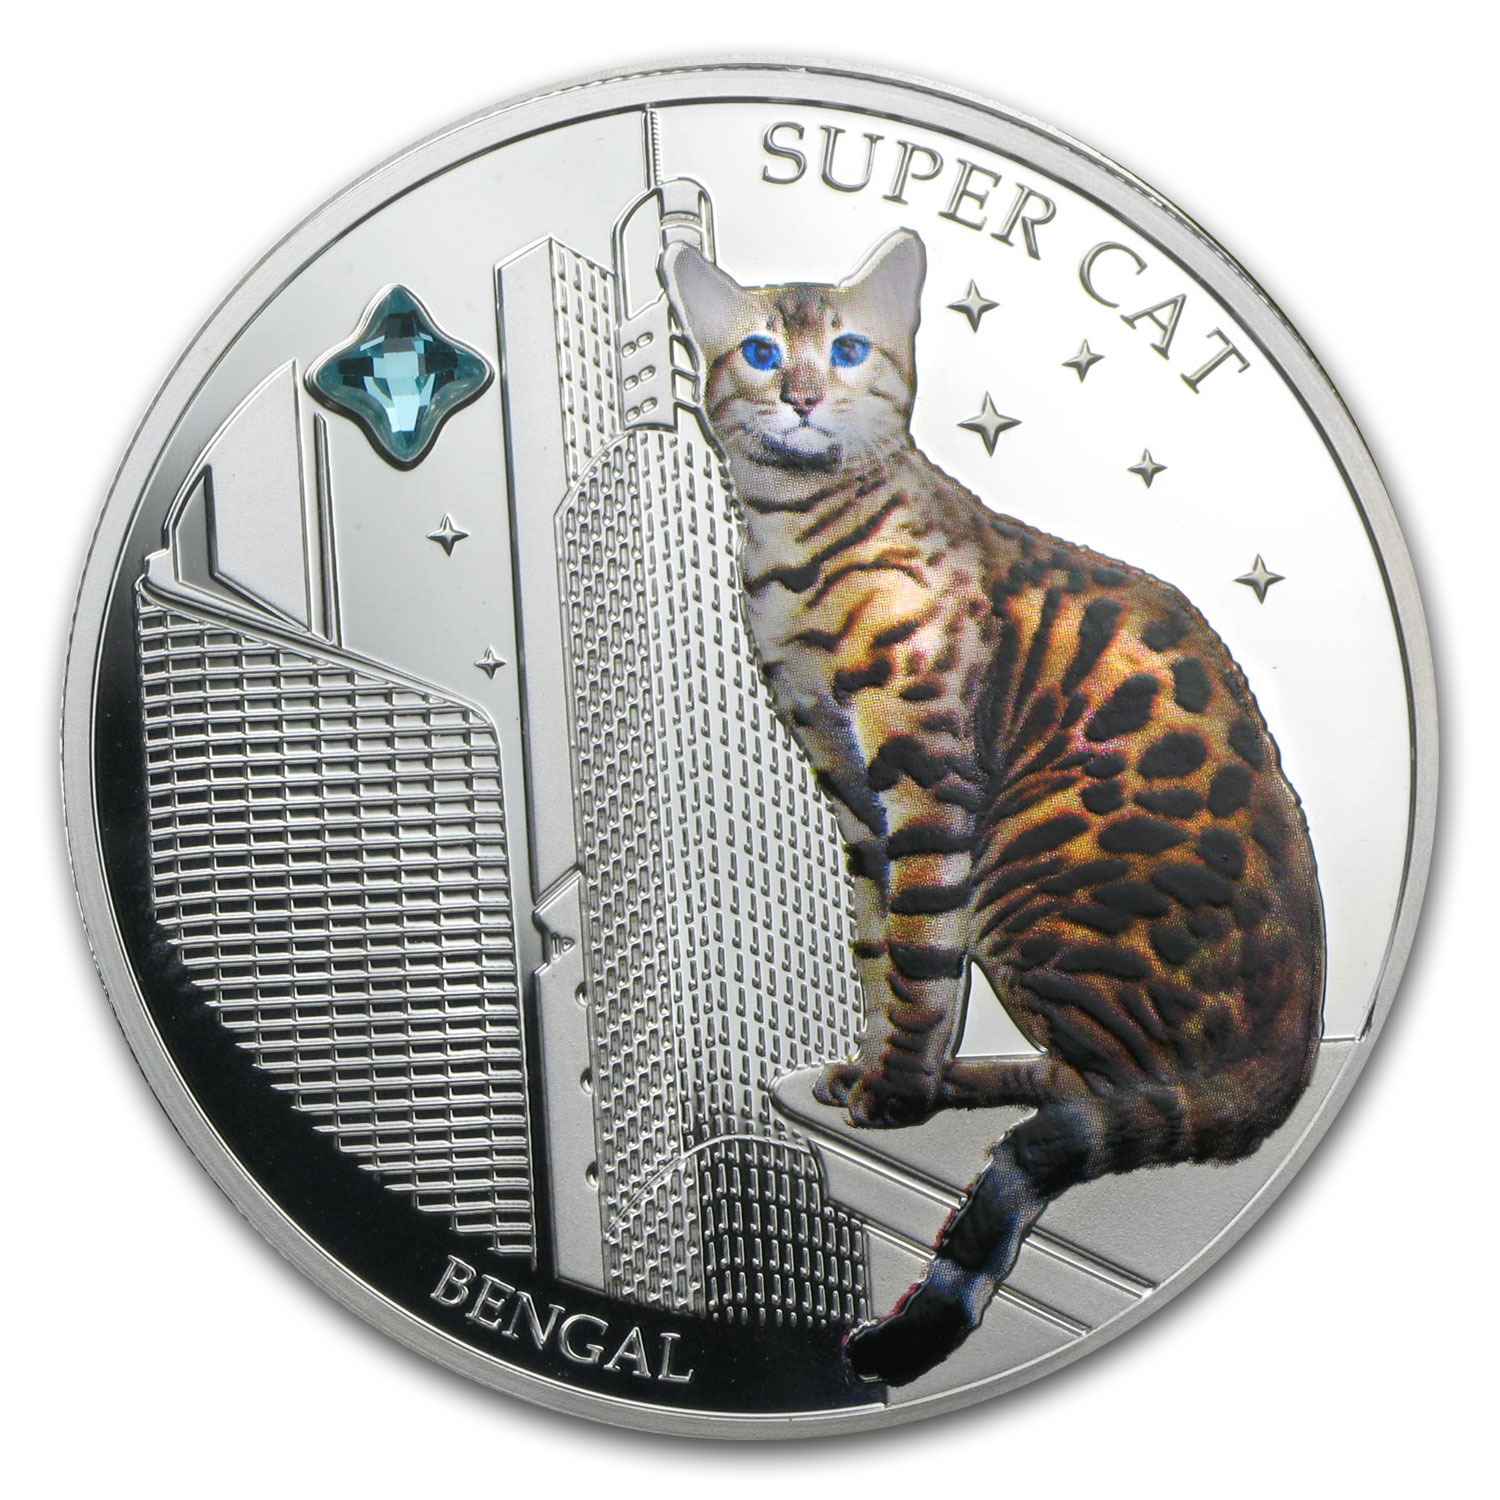 2013 Fiji Silver Dogs & Cats Series Super Cat Bengal